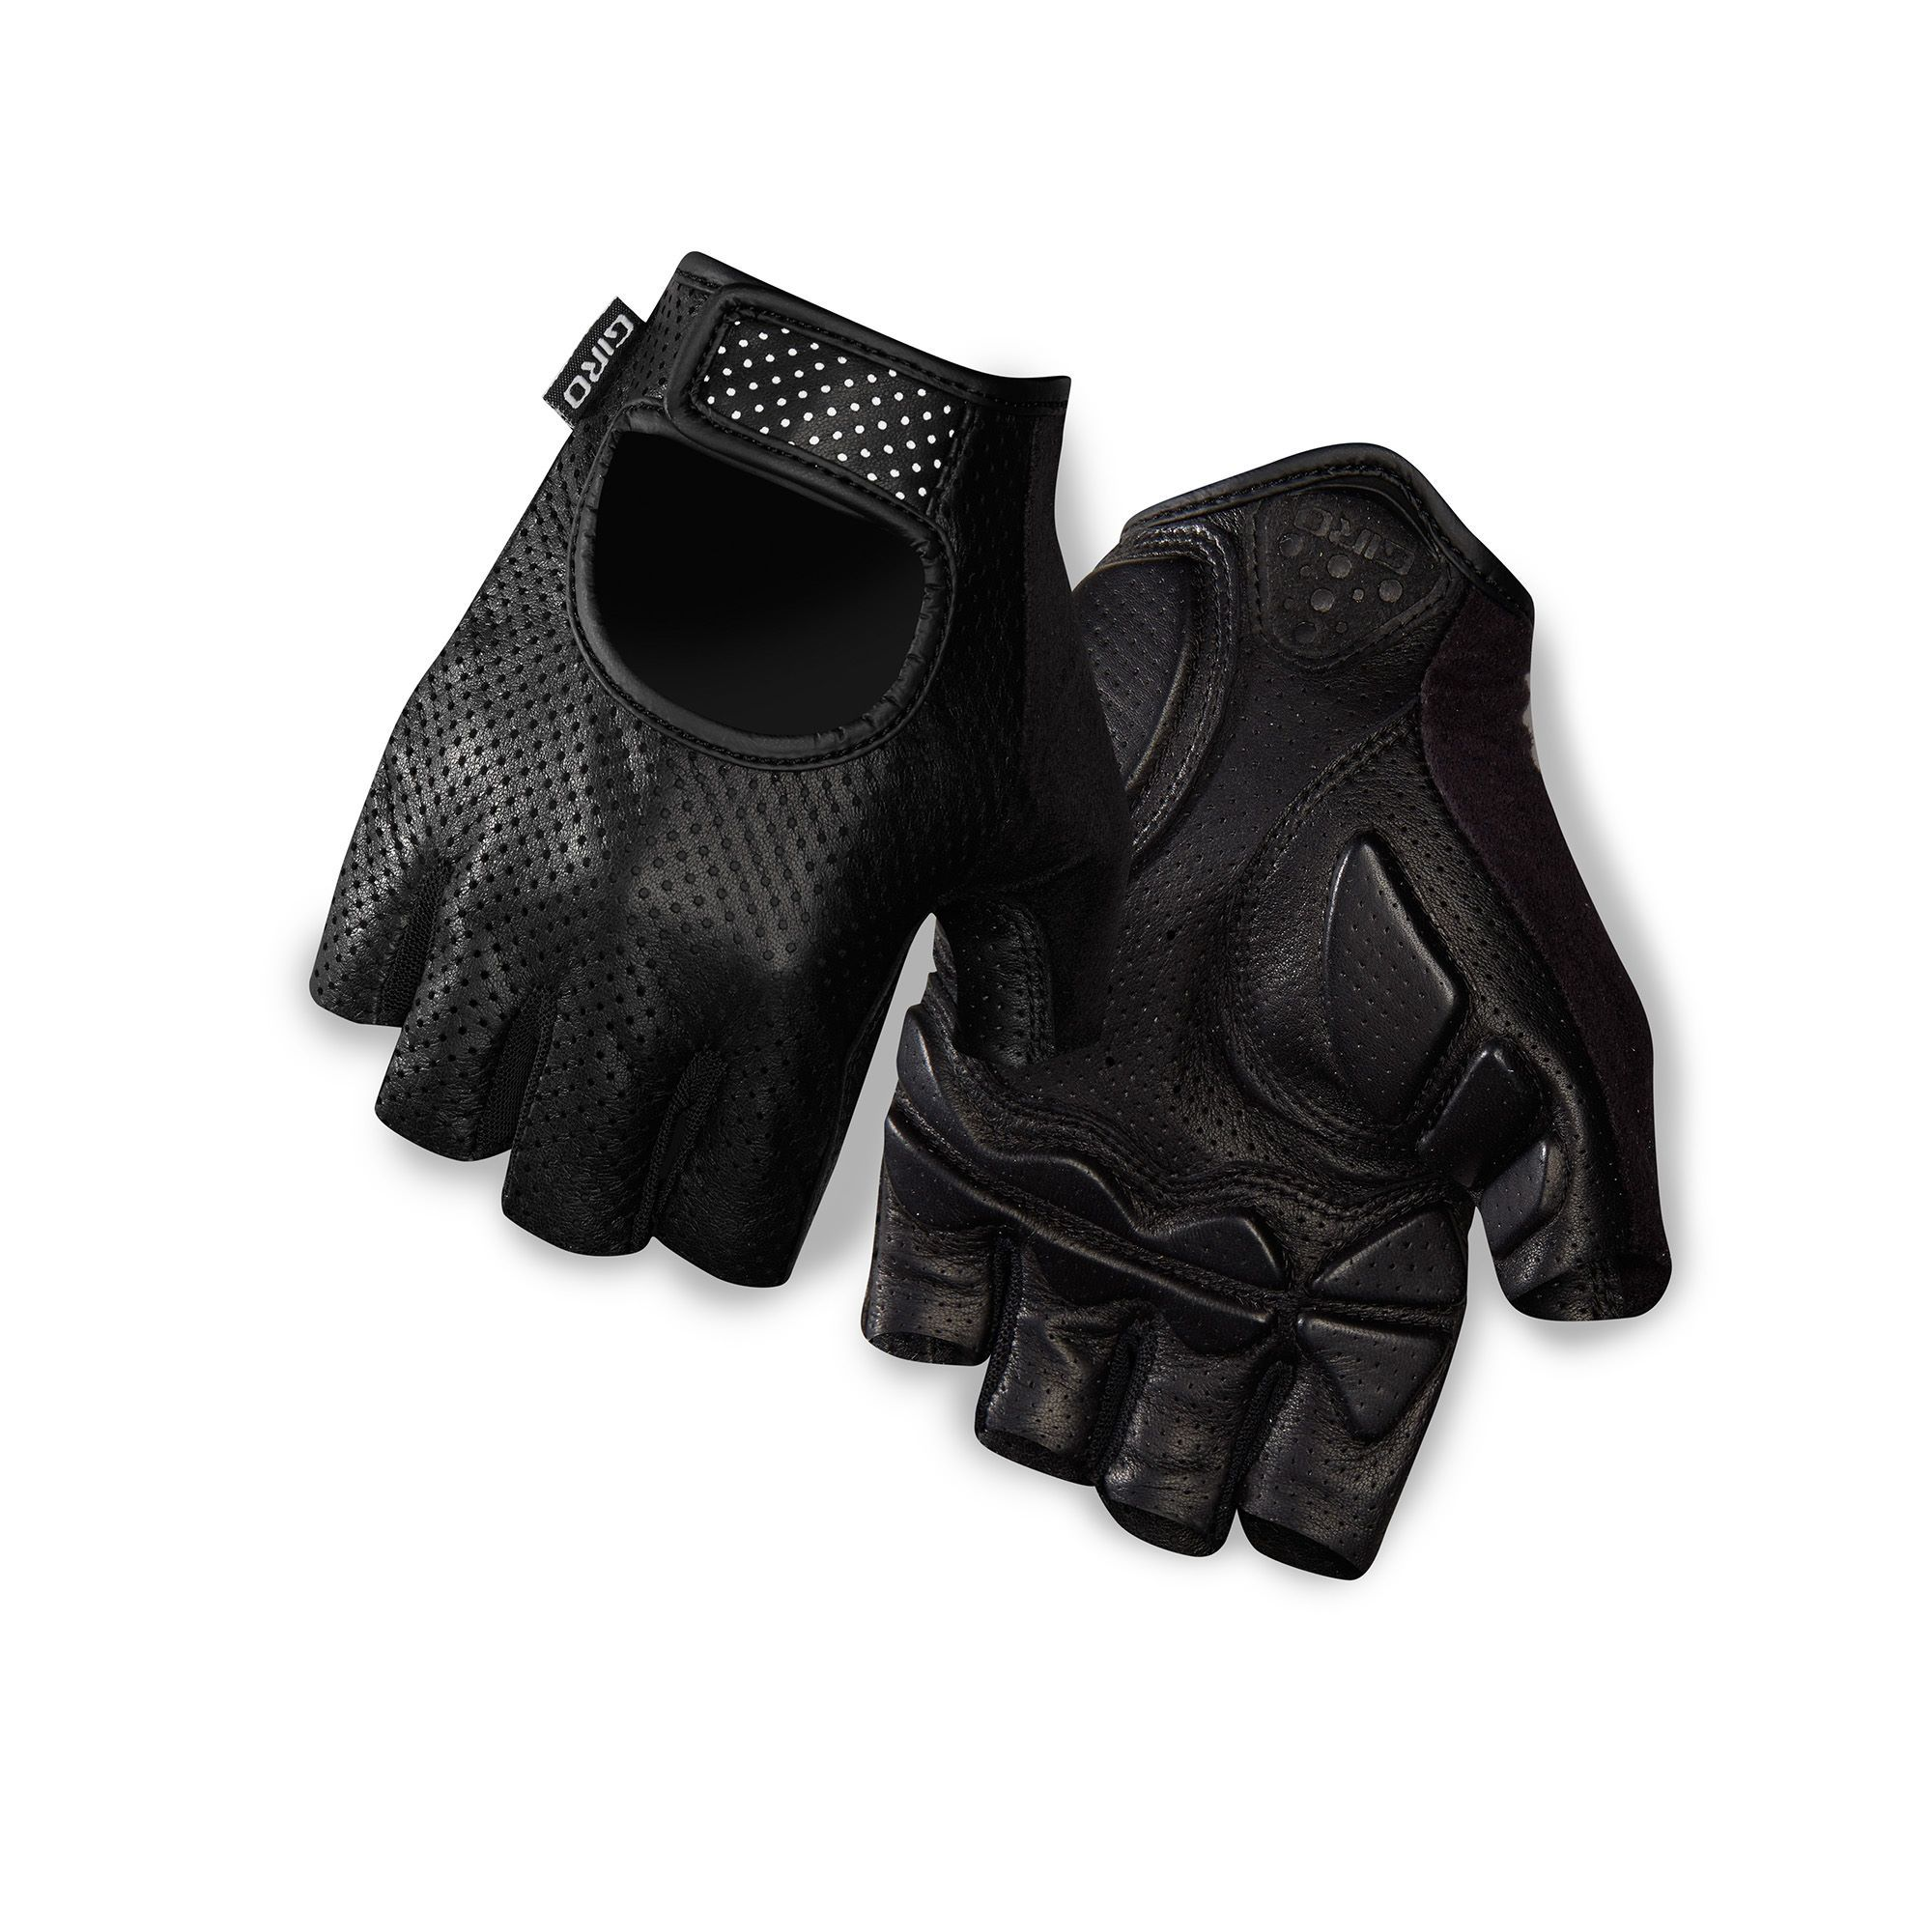 Wiggle giro lx mitts short finger gloves cycling and